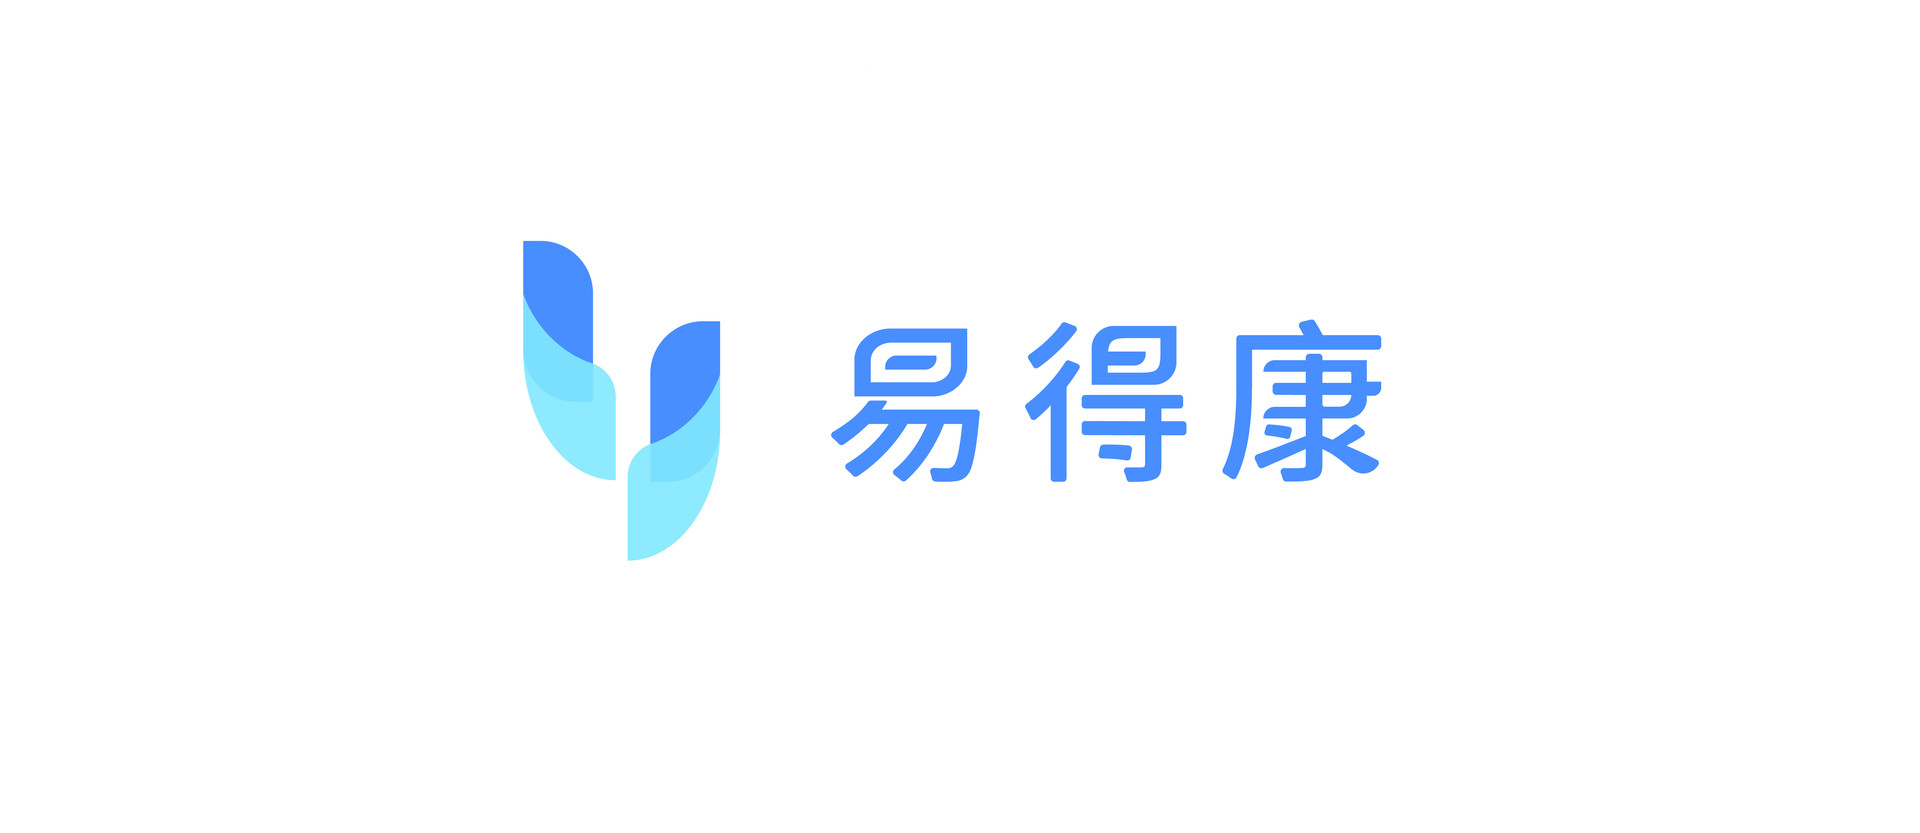 ydcare logo project-15.jpg